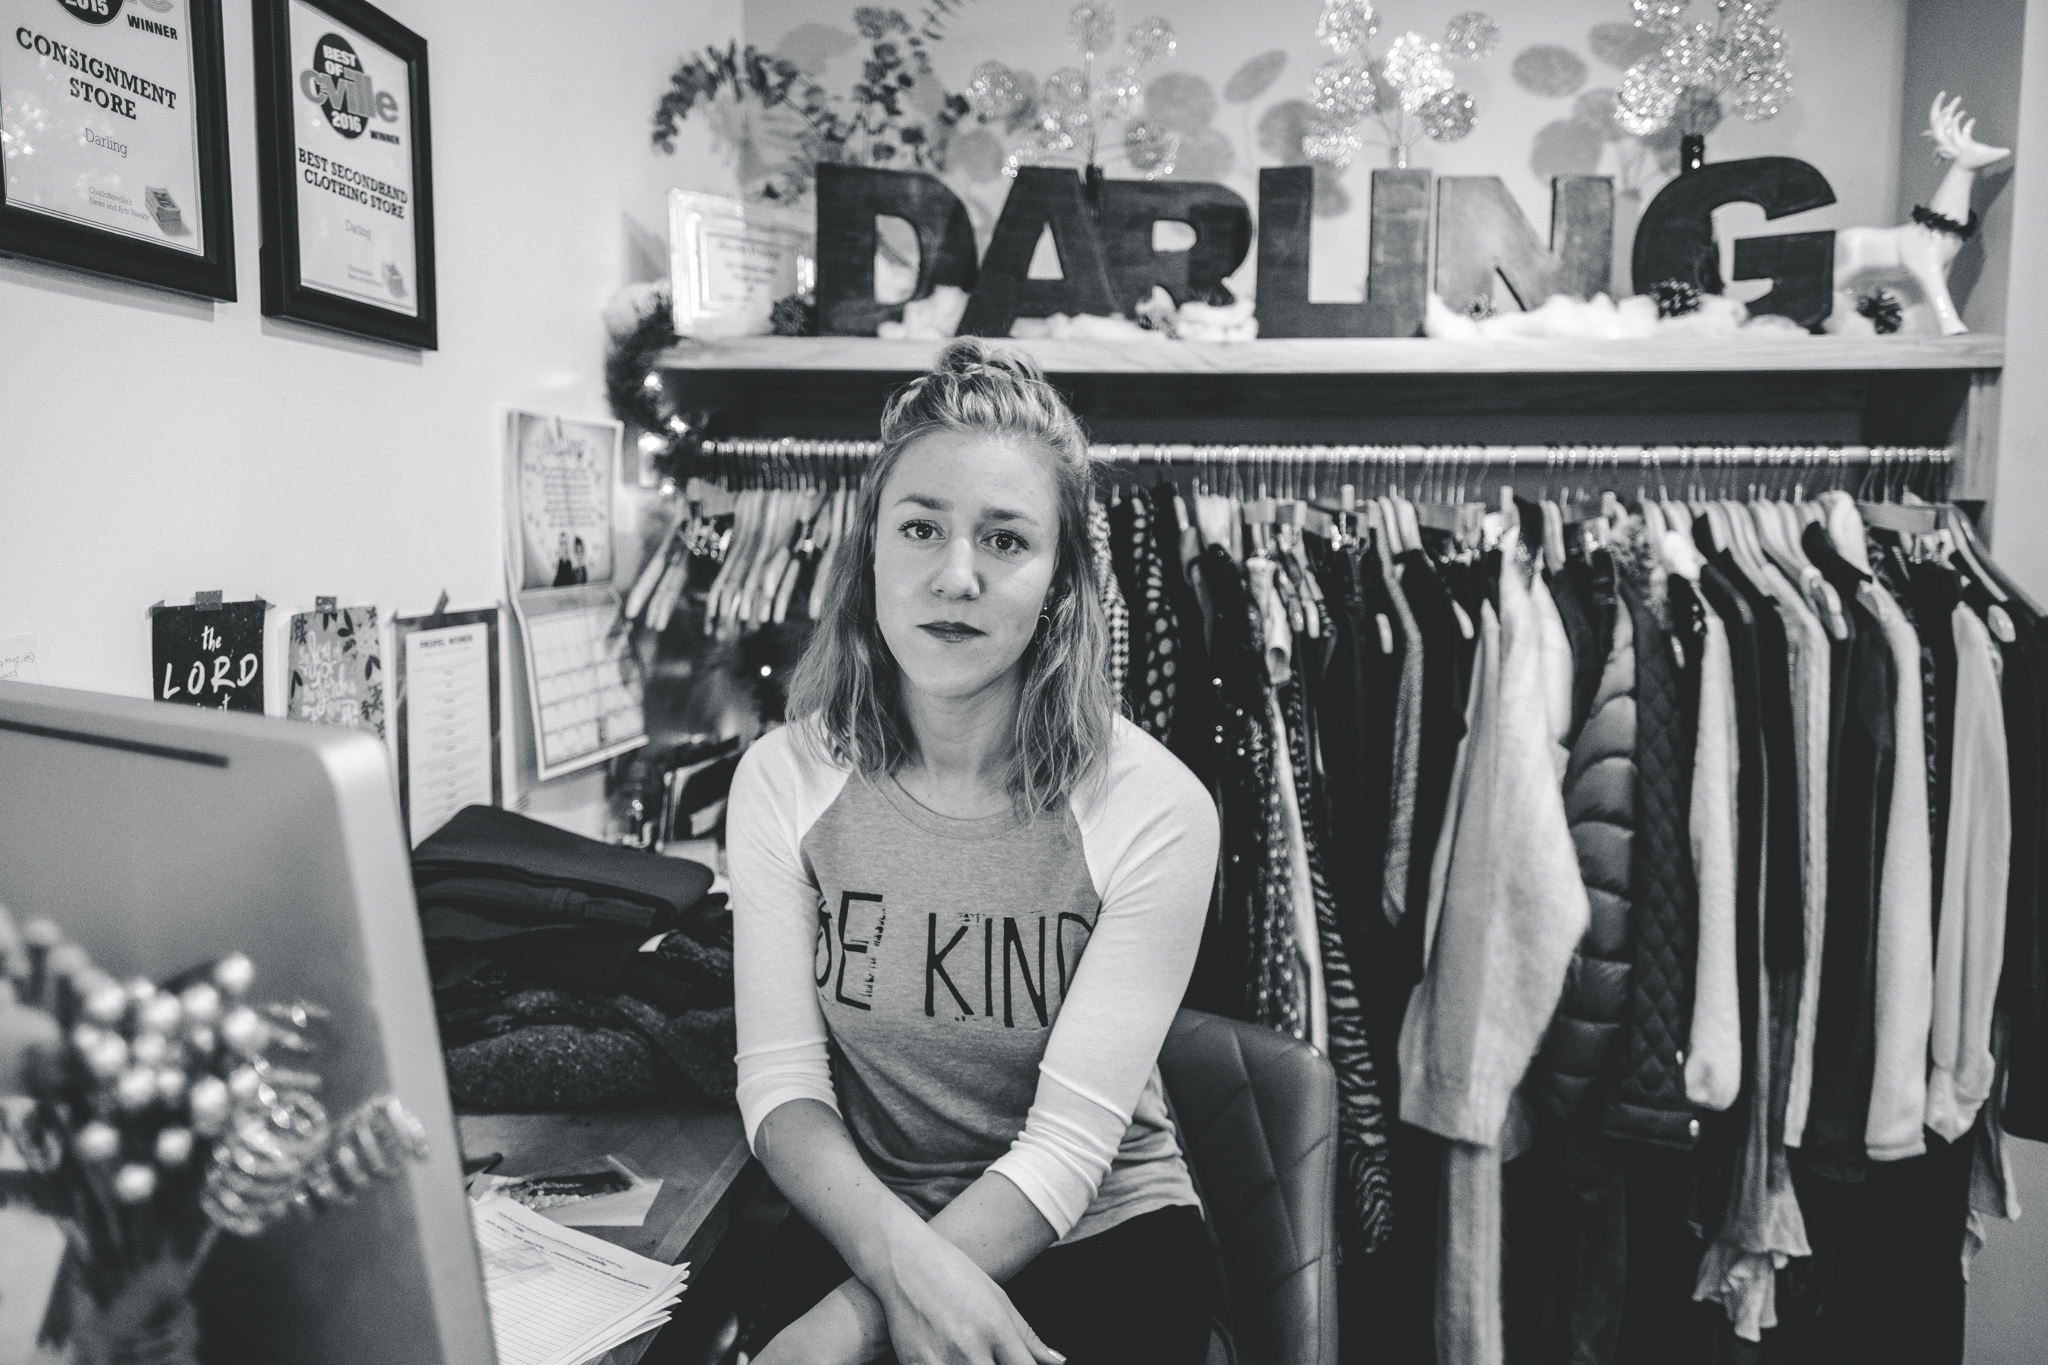 Shop Girl Year in Review | Photography by Tristan Williams